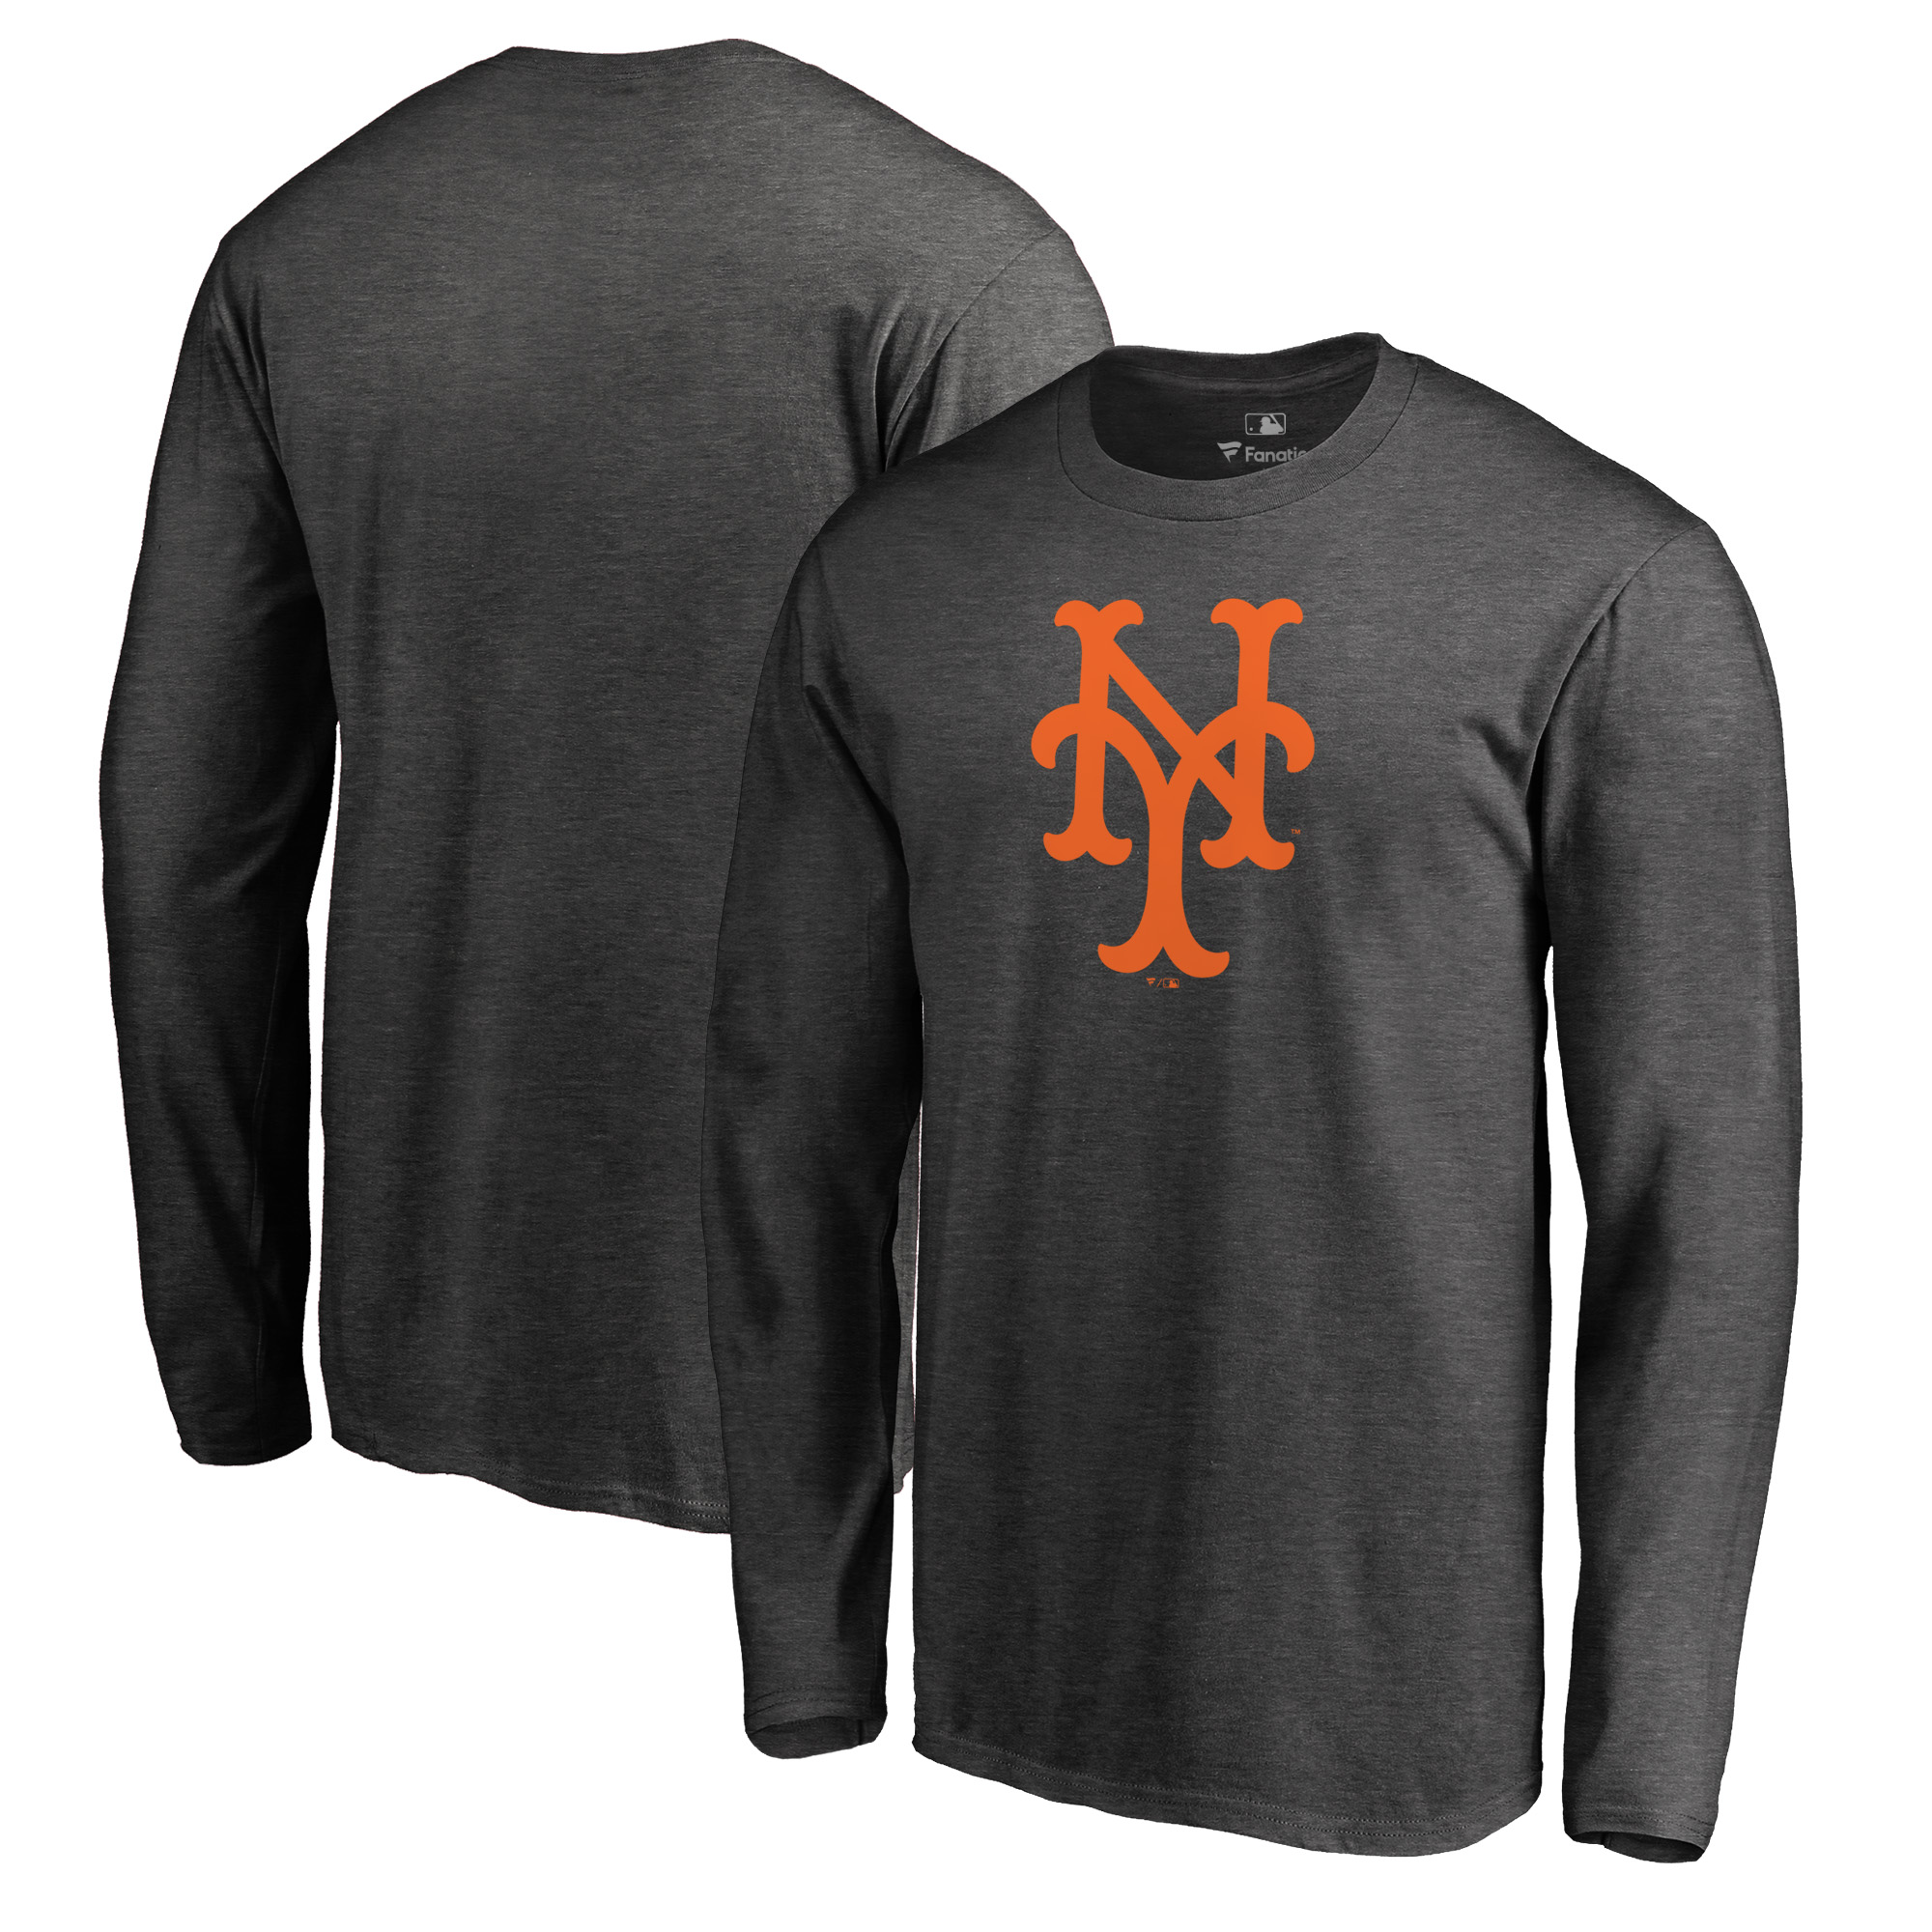 New York Mets Fanatics Branded Cooperstown Collection Huntington Long Sleeve T-Shirt - Heathered Gray